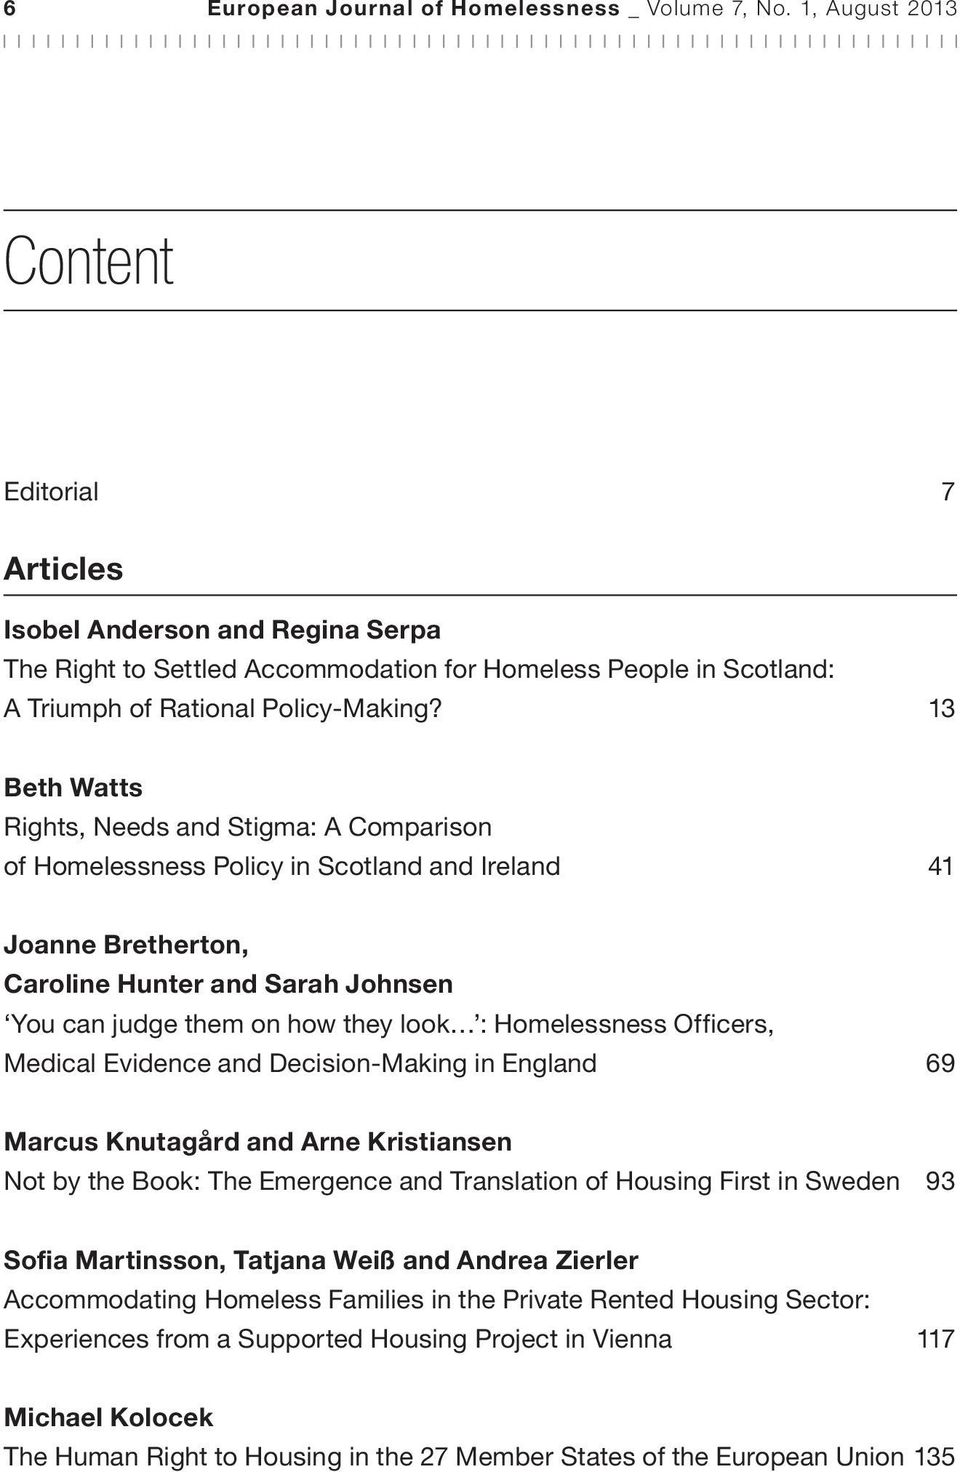 13 Beth Watts Rights, Needs and Stigma: A Comparison of Homelessness Policy in Scotland and Ireland 41 Joanne Bretherton, Caroline Hunter and Sarah Johnsen You can judge them on how they look :